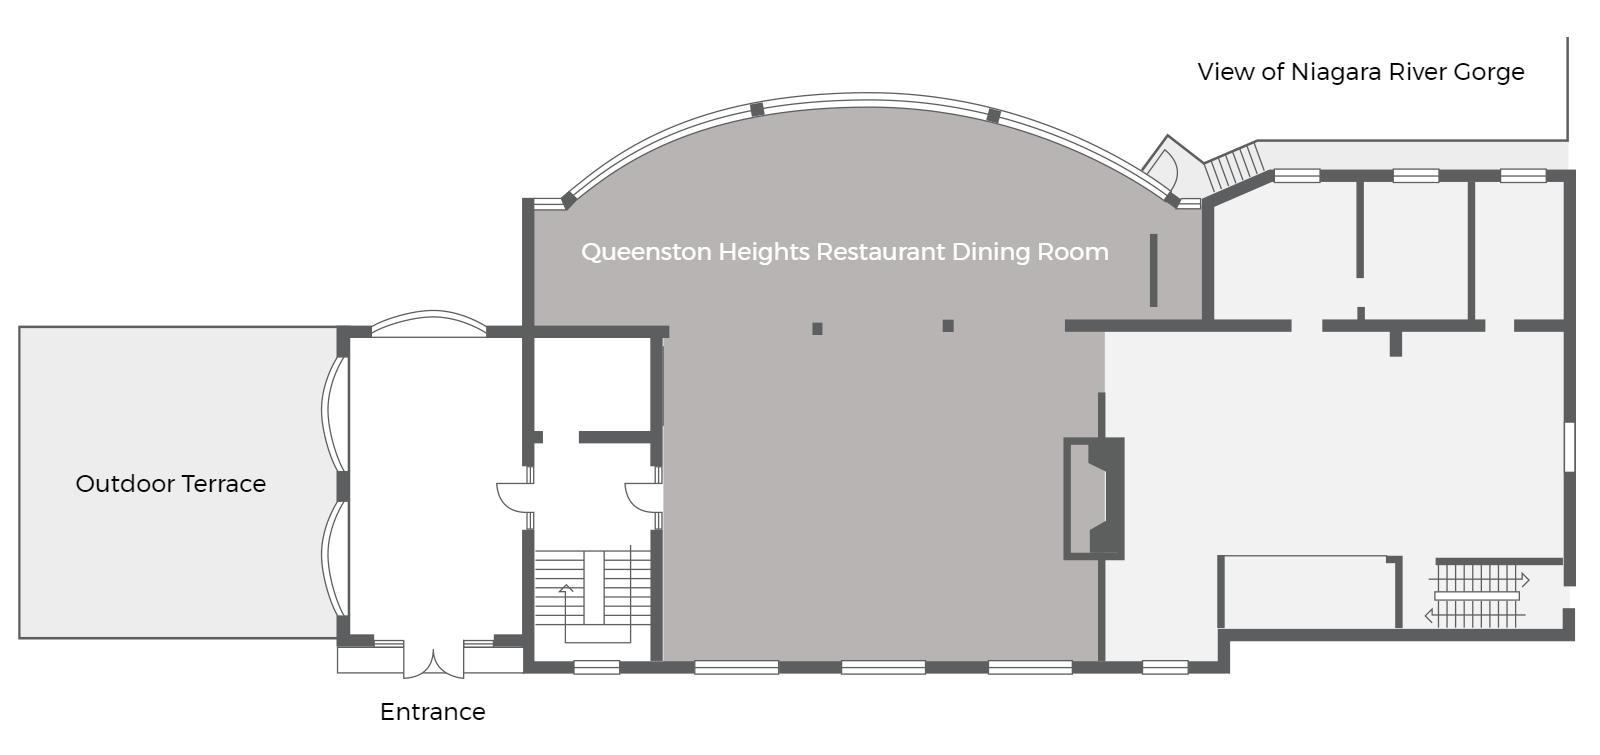 Main level floor plan of Queenston Heights Restaurant